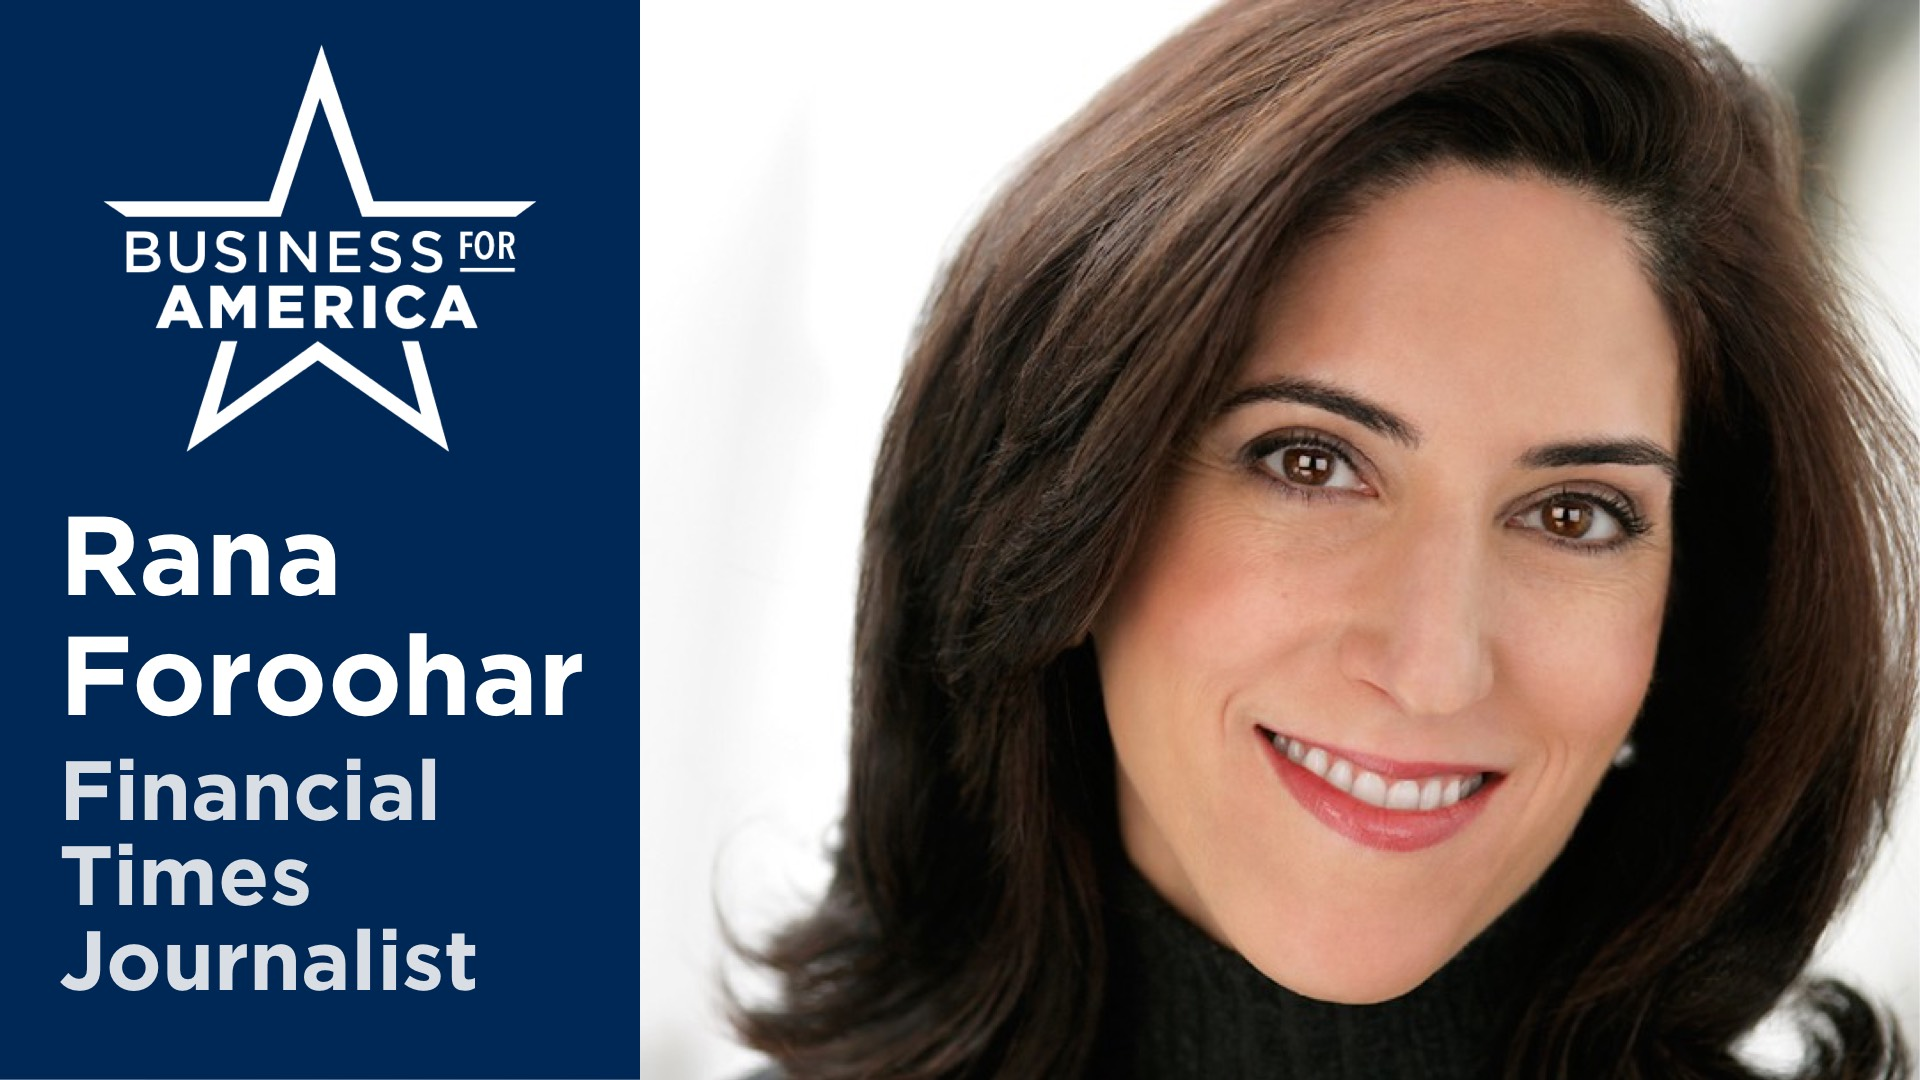 FT Journalist Rana Foroohar • Financial Markets, Big Tech, and the U.S. Economy